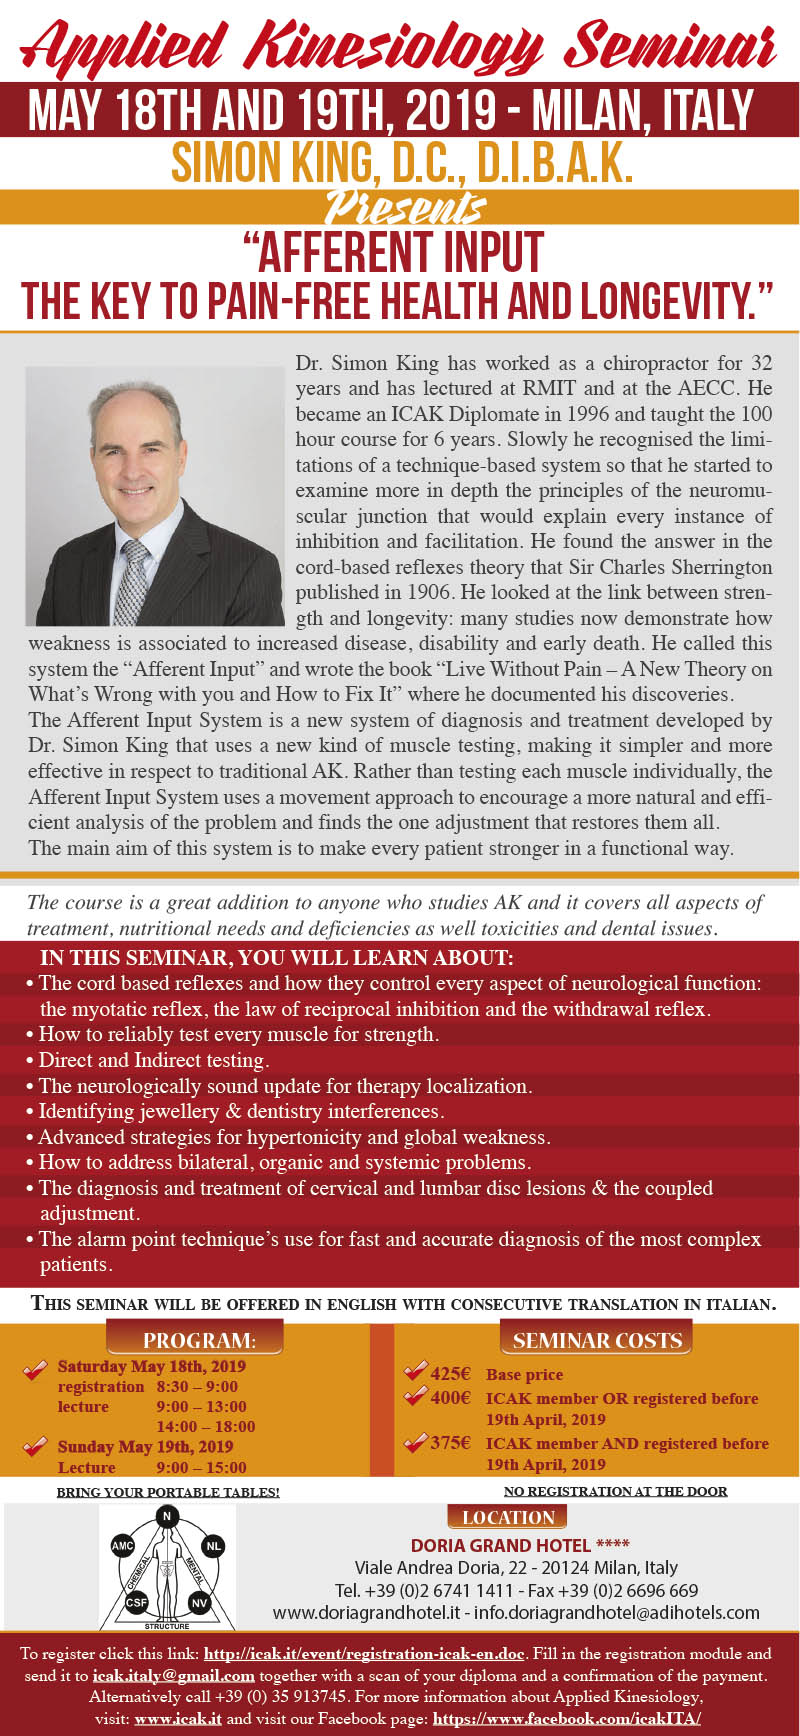 "Dr. Simon King - ""Afferent Input, The Key to Pain-free Health and Longevity"" May 18th and 19th, 2019 - Milan, Italy"